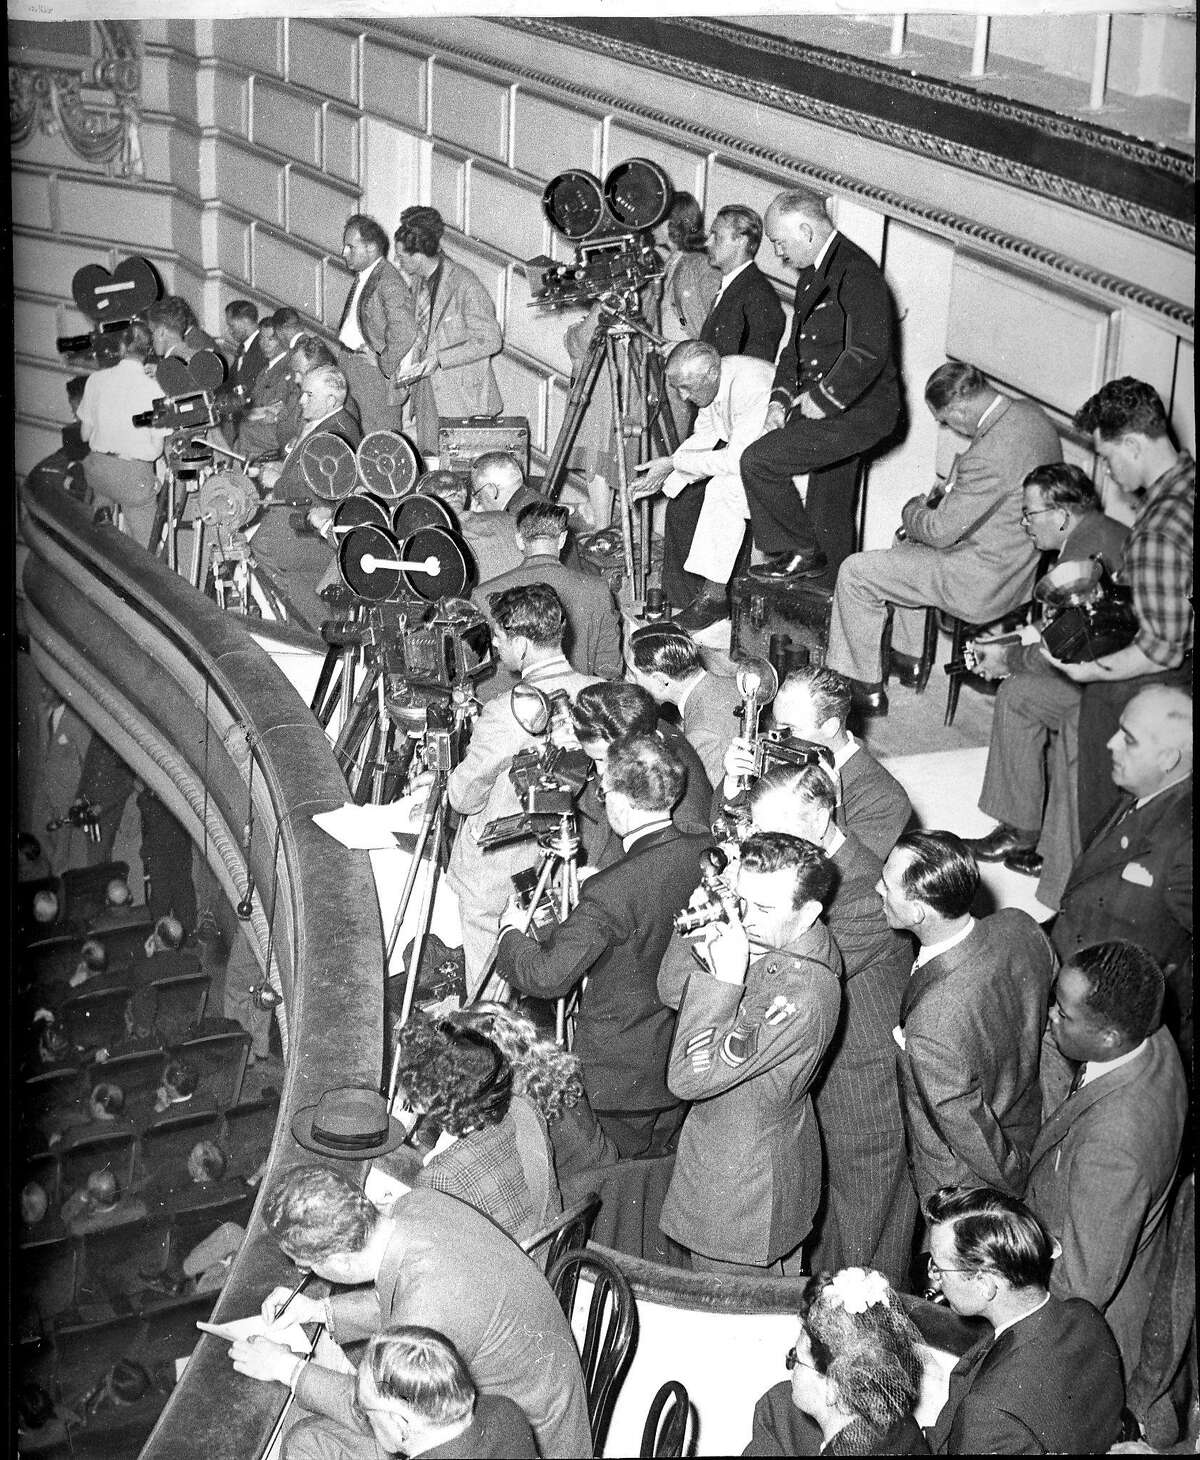 Photographers and cameramen in the OPera House record the activity of the Conference Photo ran 04/29/1945, p. 5 Likely Chronicle photo, but no photographer credit United Nations conference